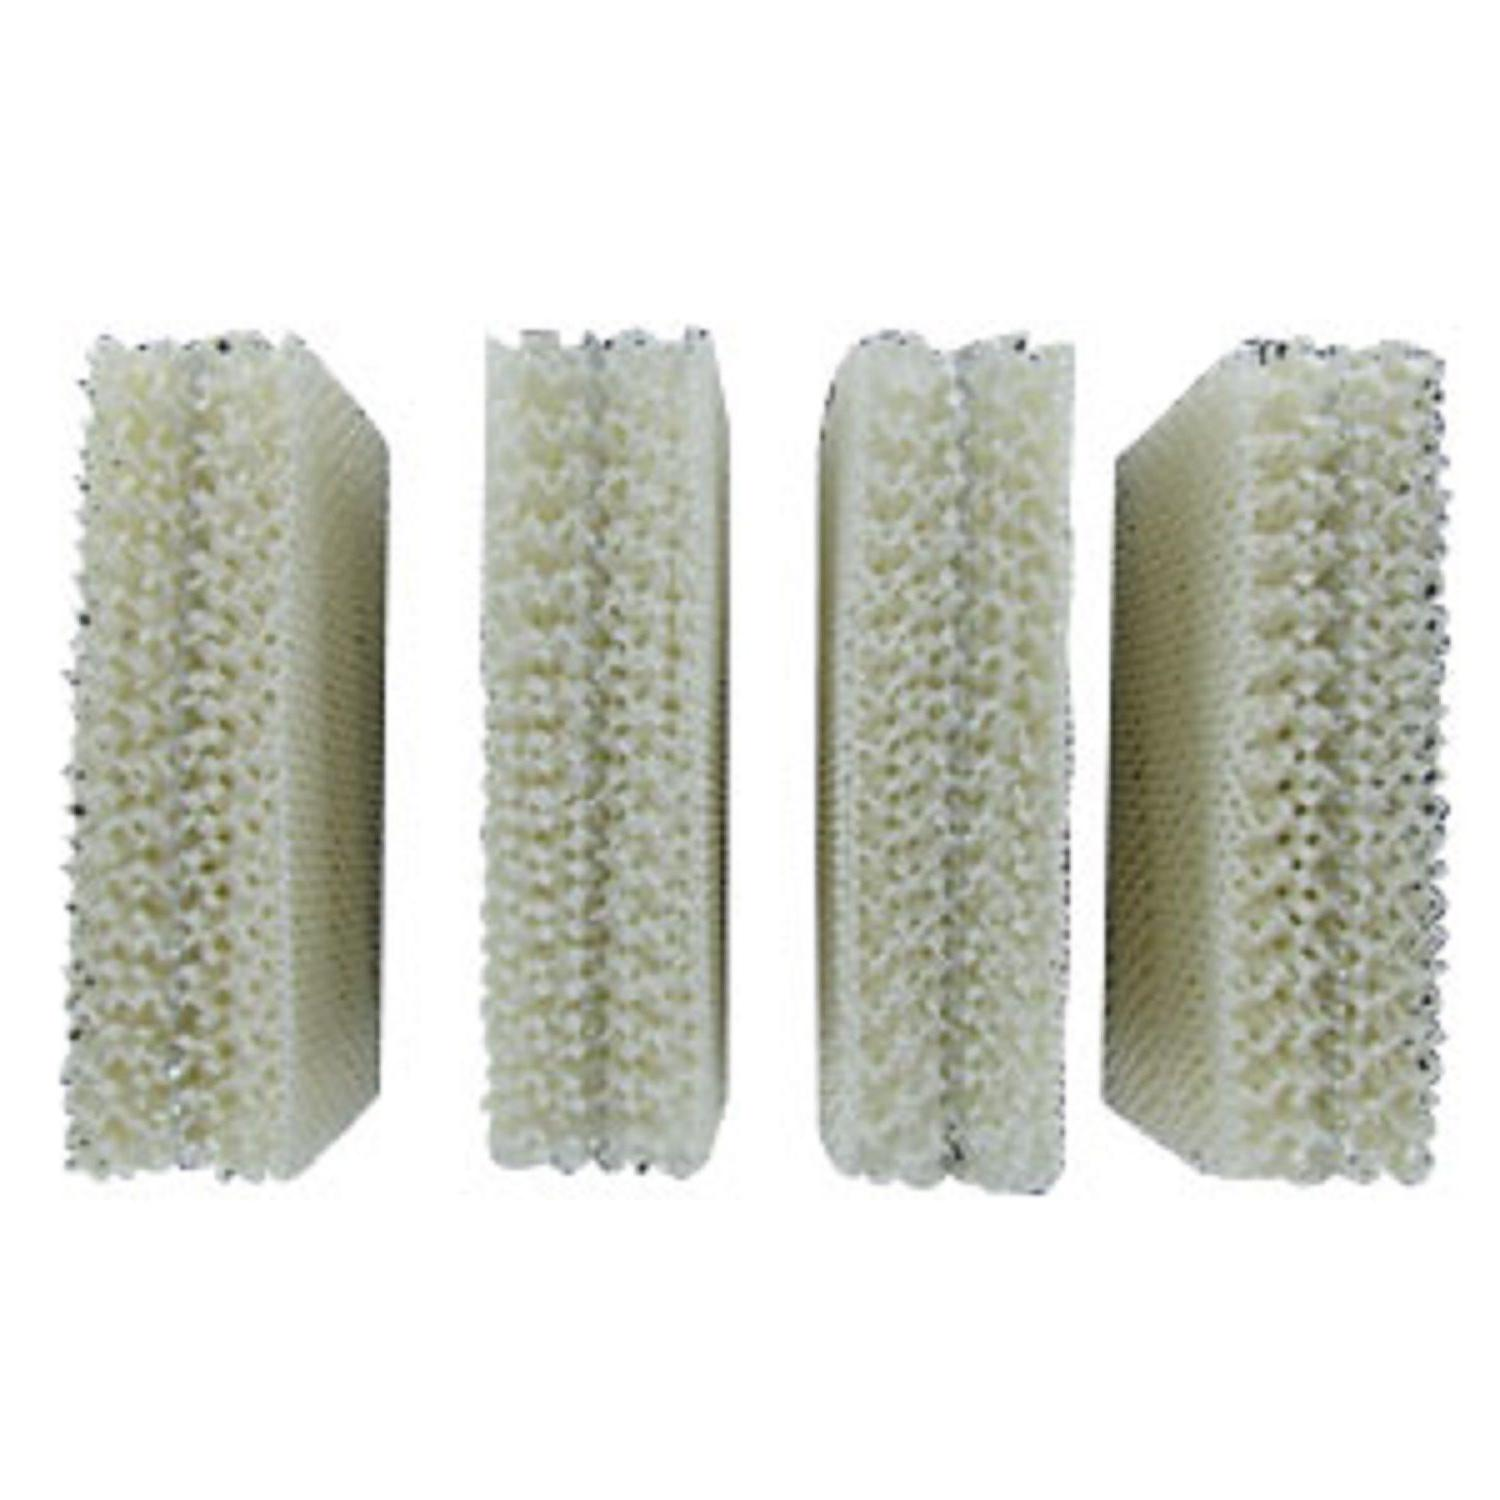 Replacement Filter Wick Emerson Portable - HDC-12, 4-Pack